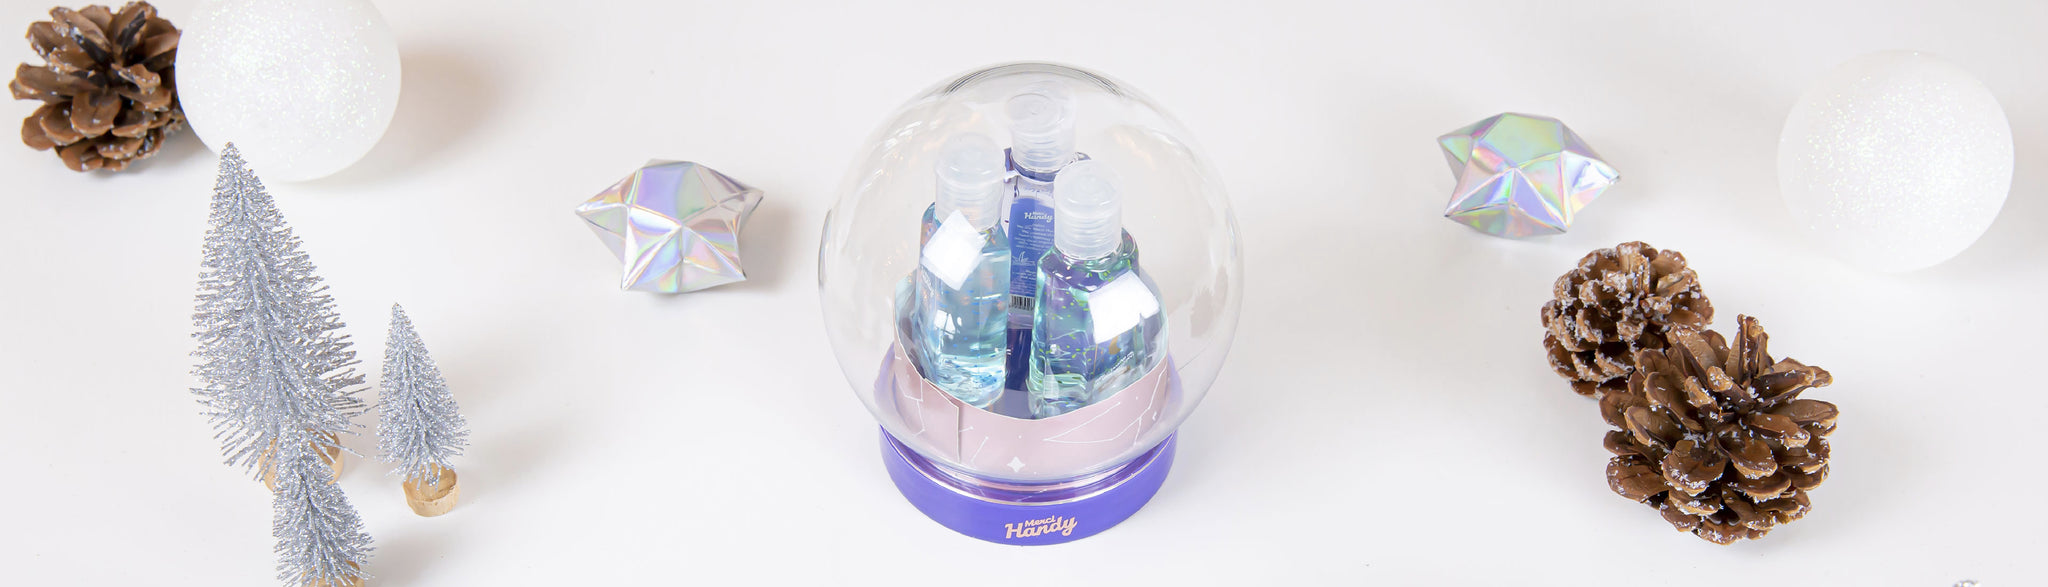 DIY : transforme ta Crystal Ball en boule à neige !